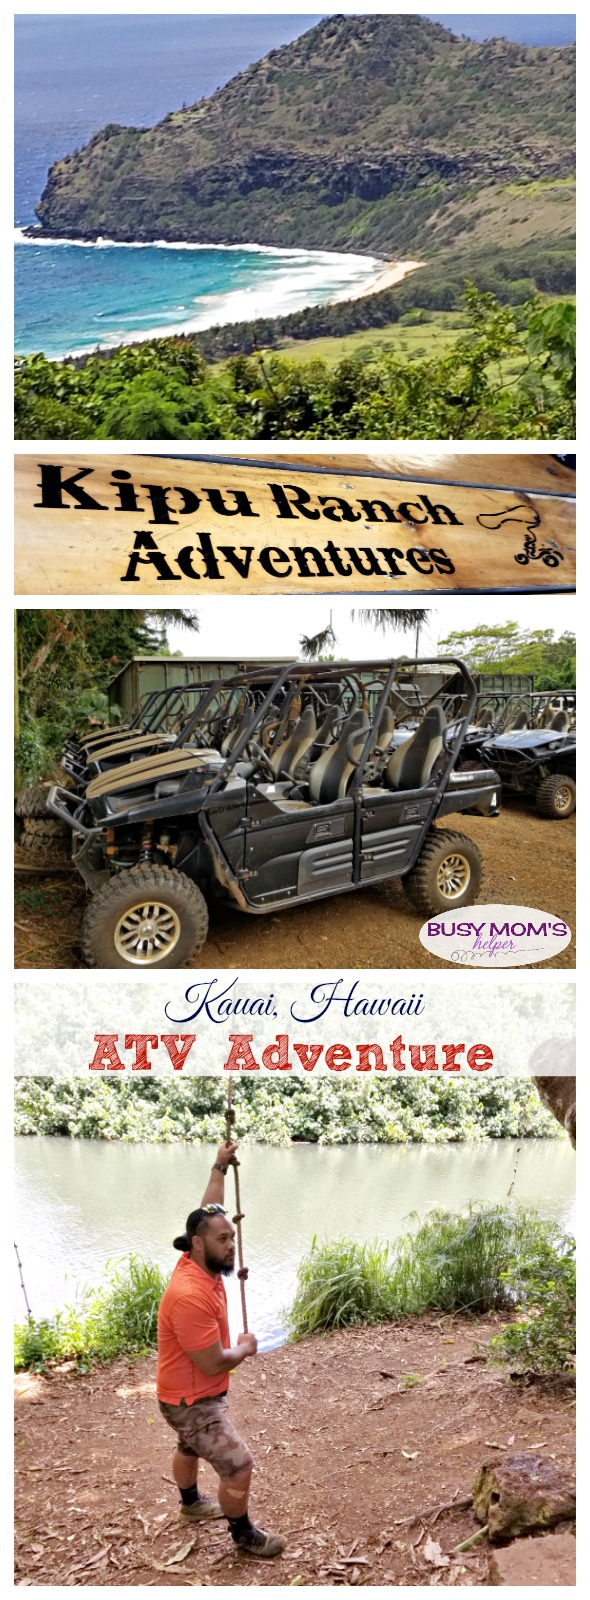 Kauai ATV Adventures. A fun & exciting activity to do on your Kauai, Hawaii vacation! #sponsored #KauaiDiscovery